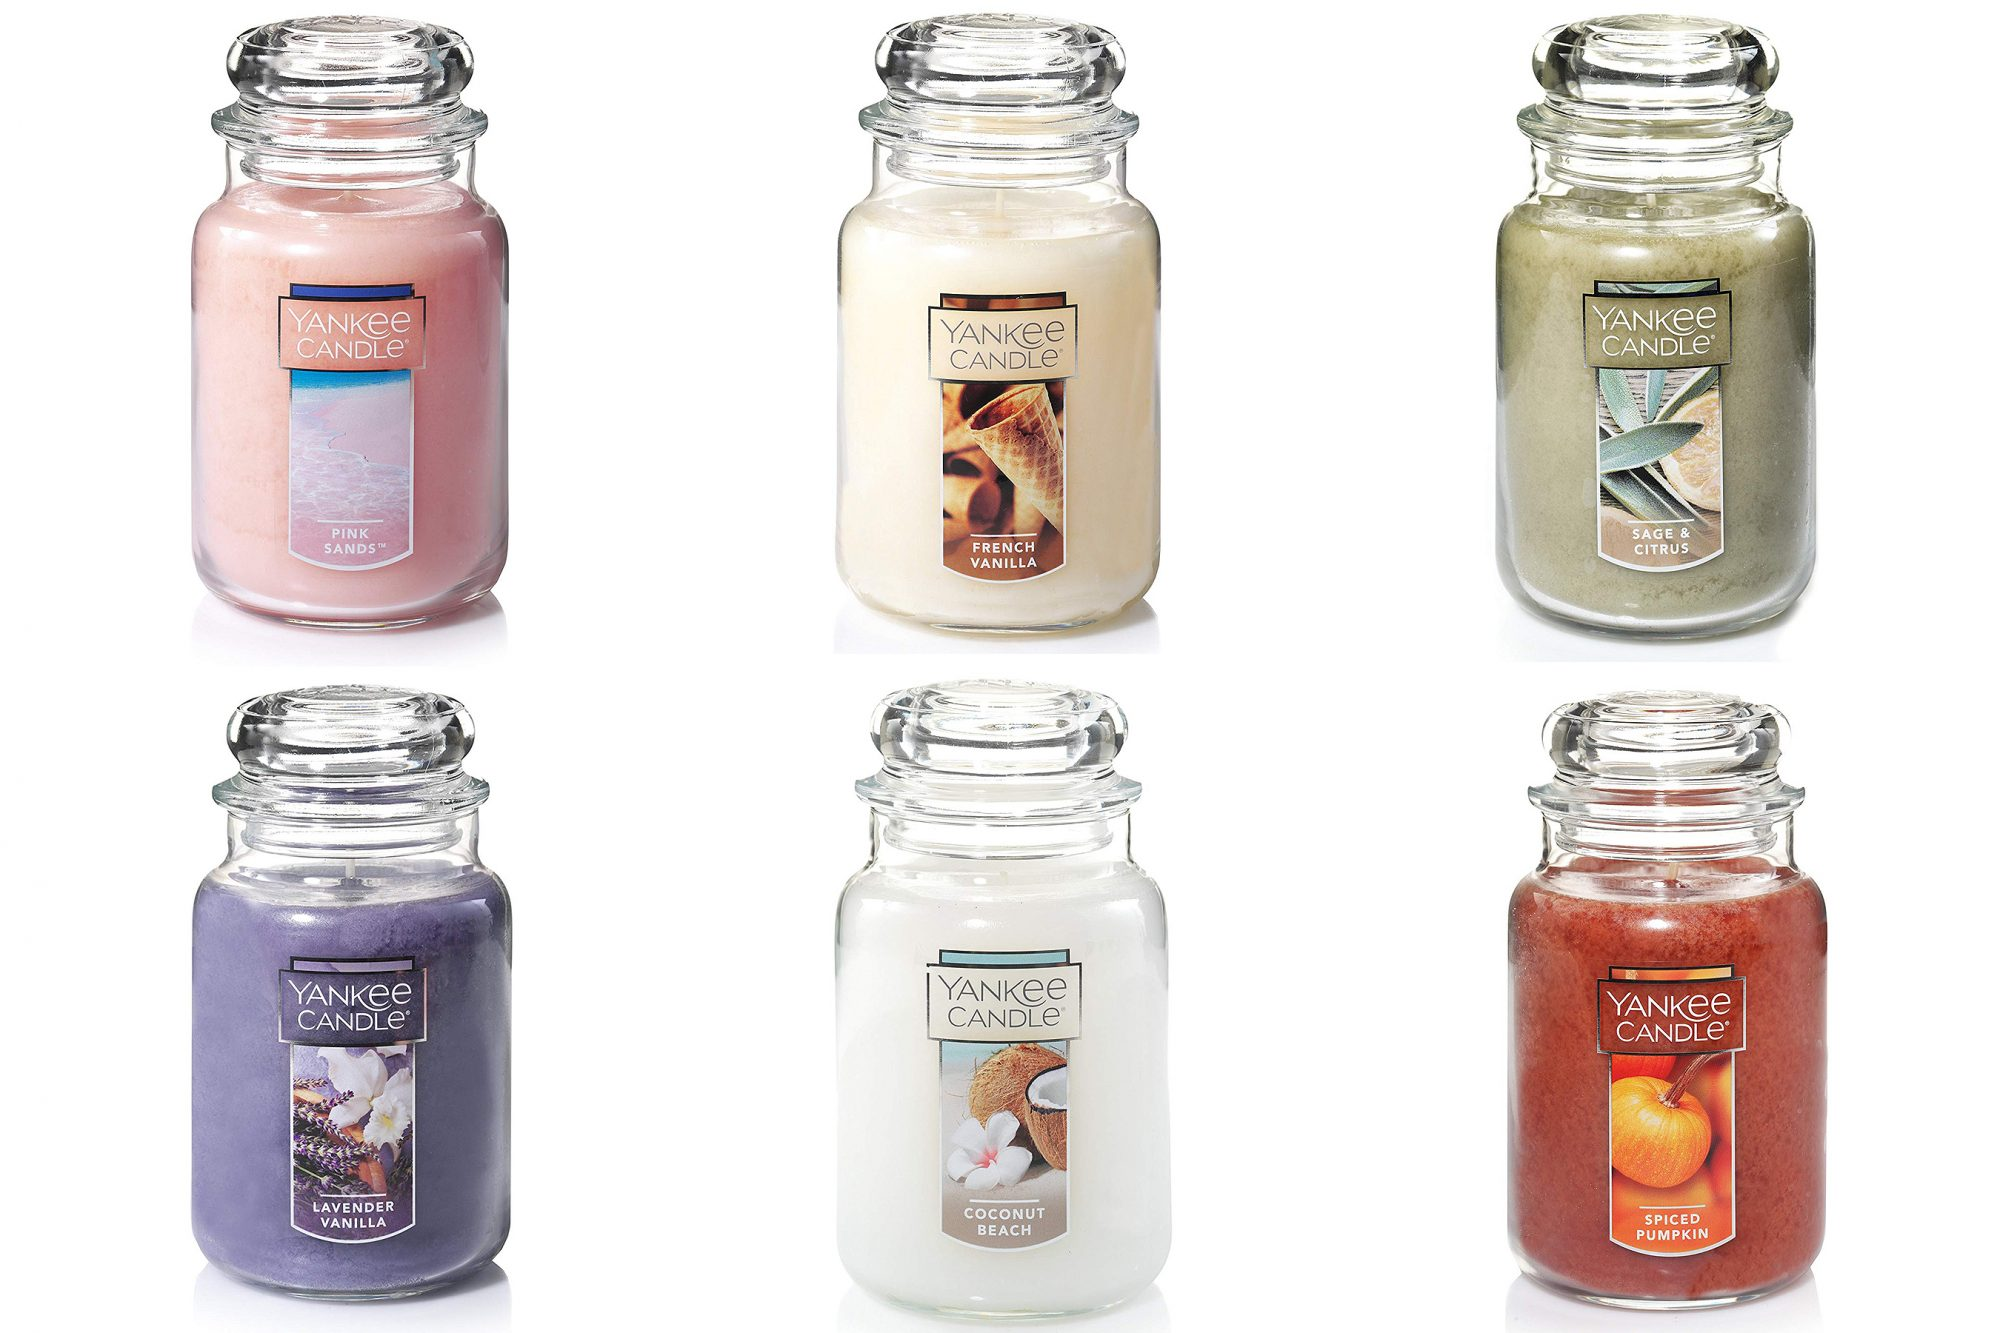 Amazon Prime Day Yankee Candle Sale